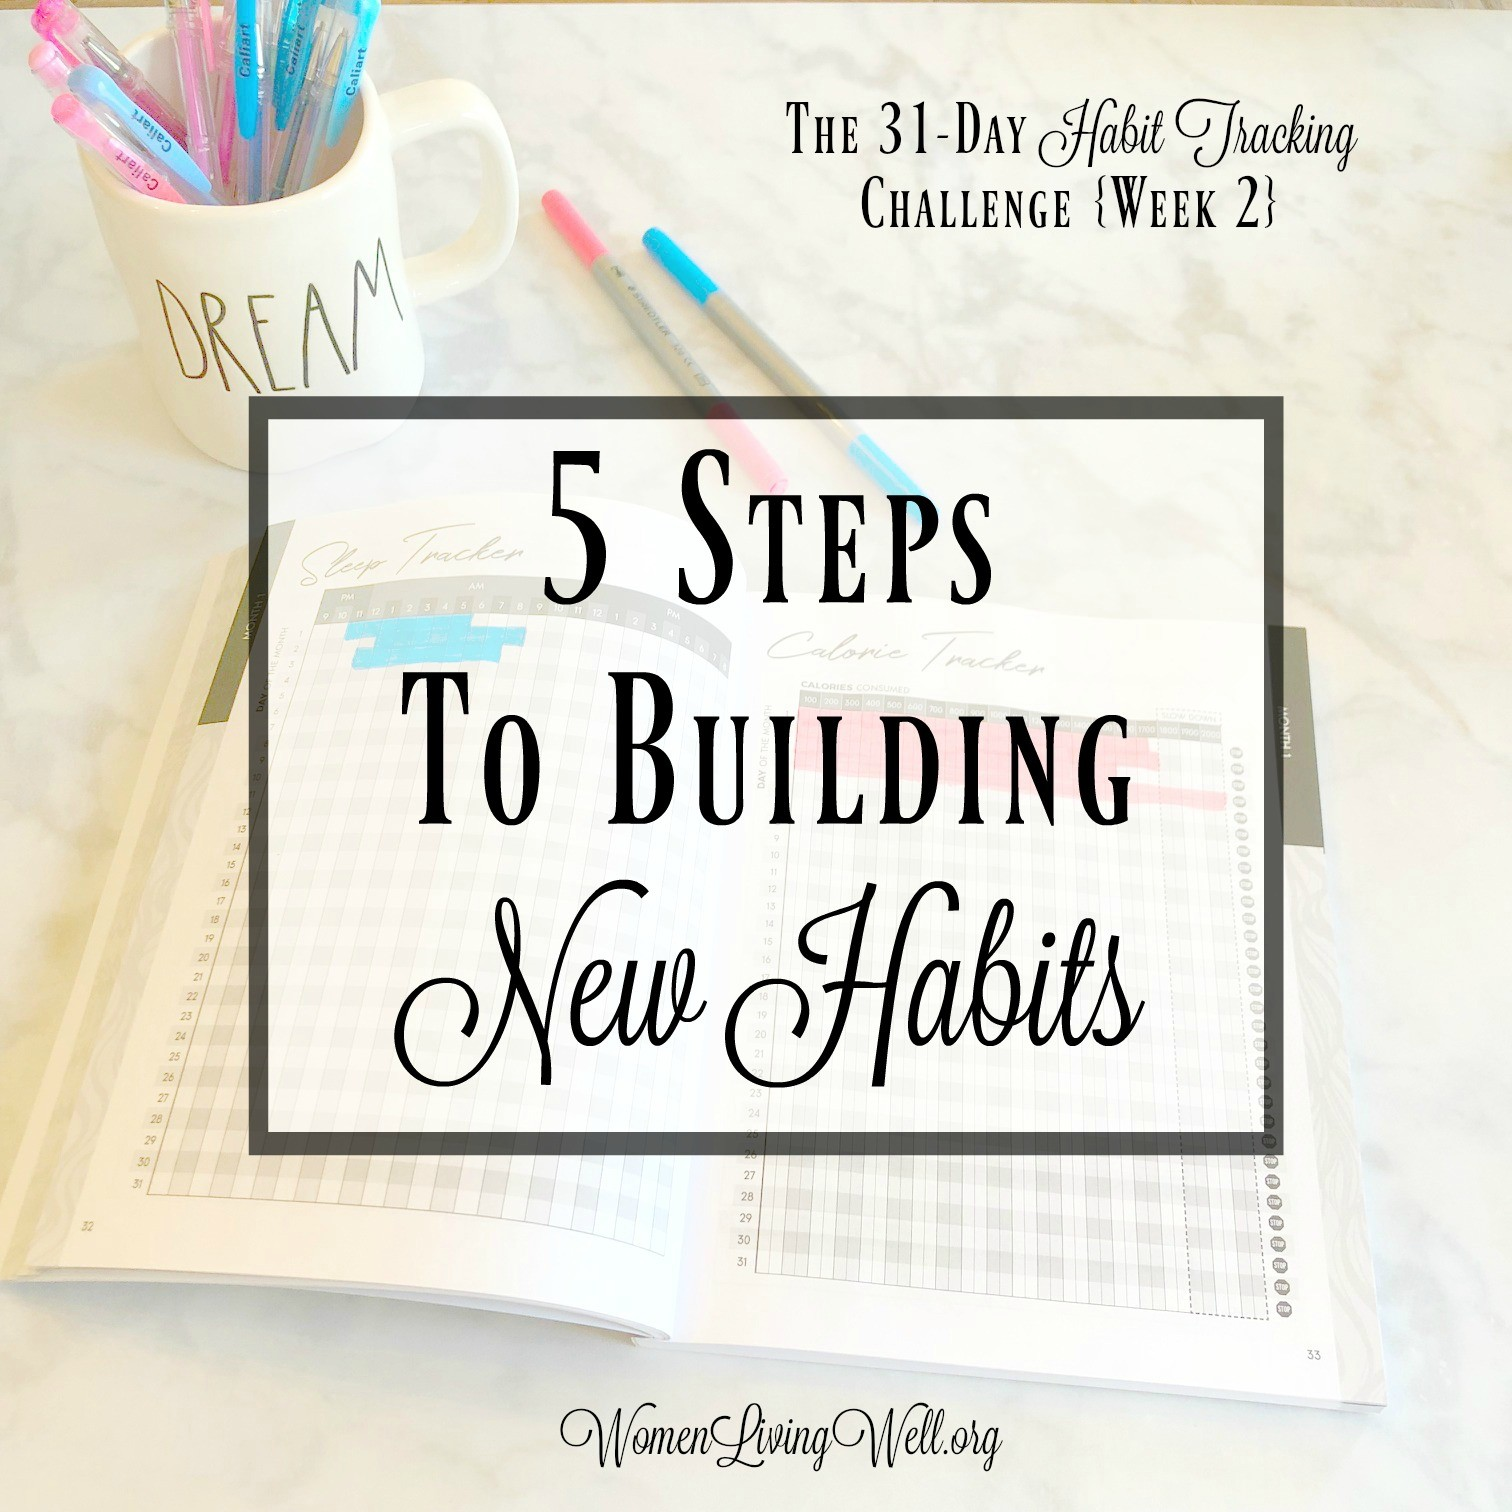 5 Steps To Building New Habits